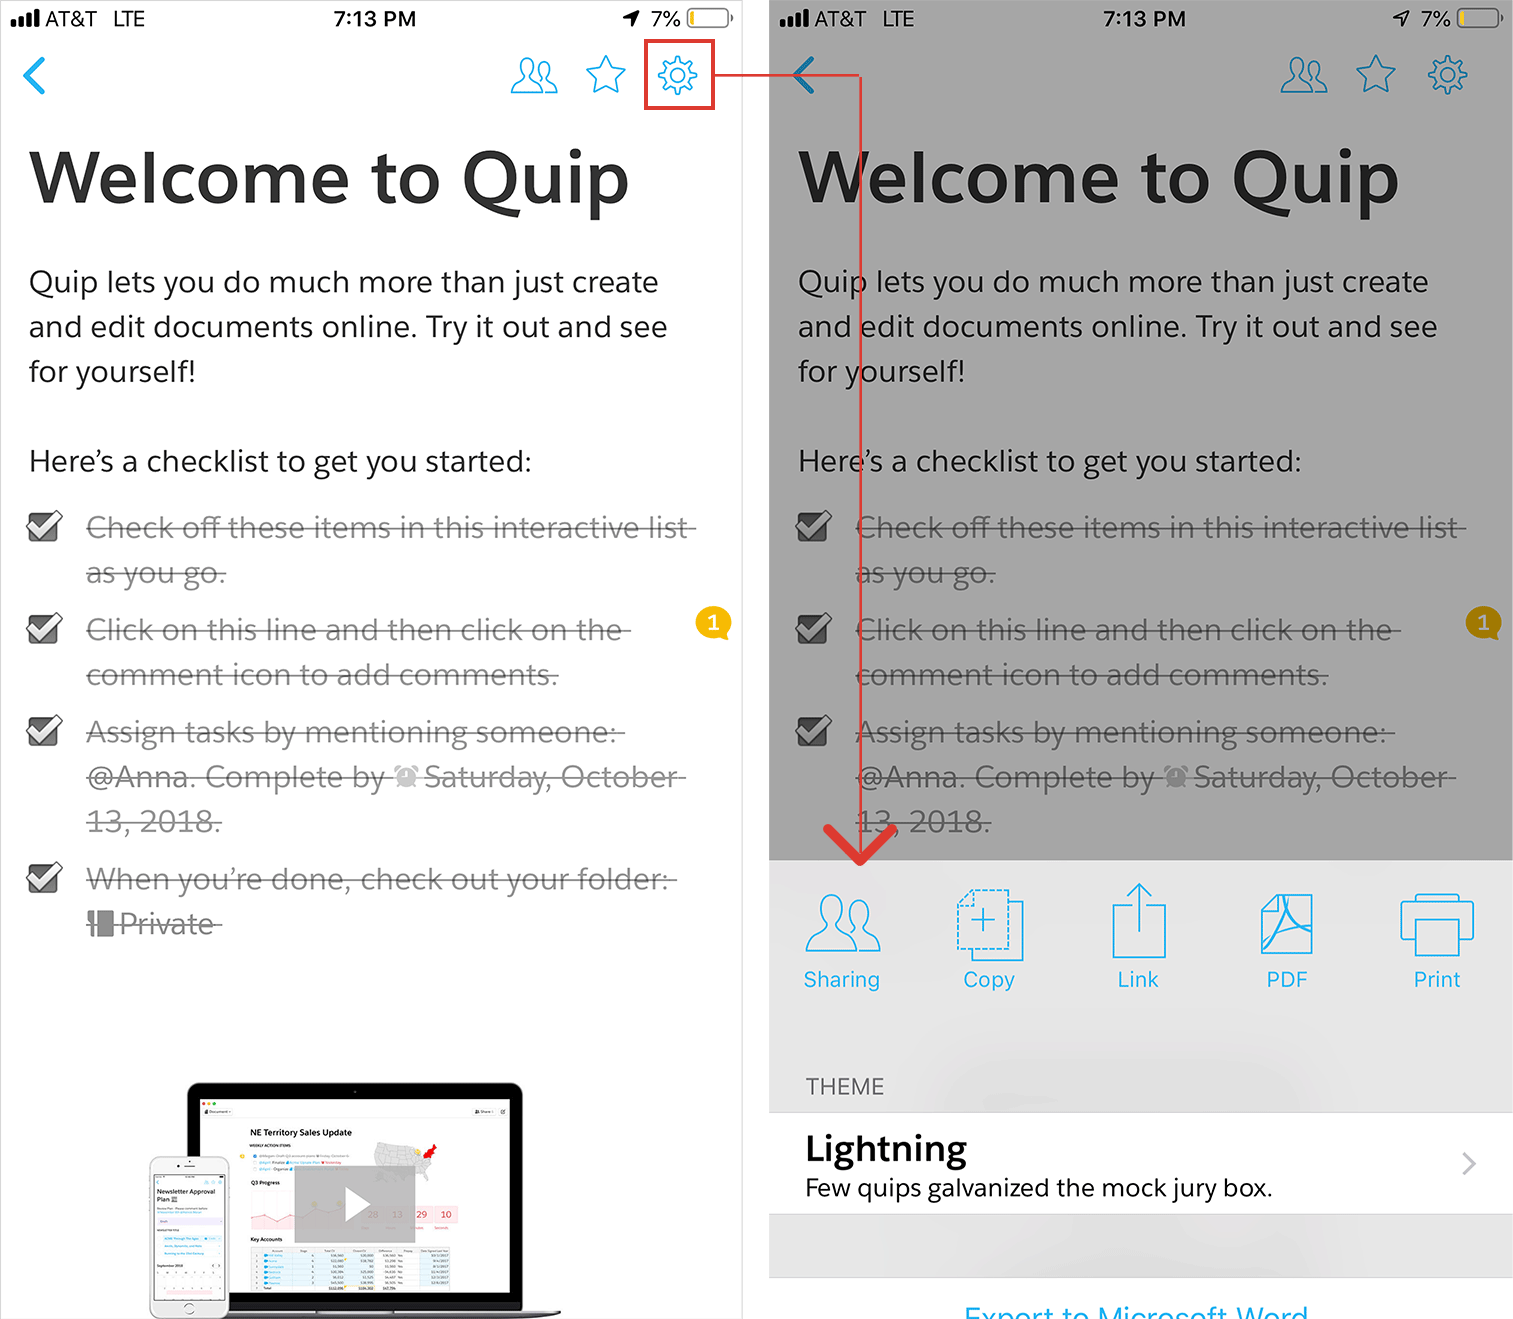 Quip contextual menu using a settings icon.